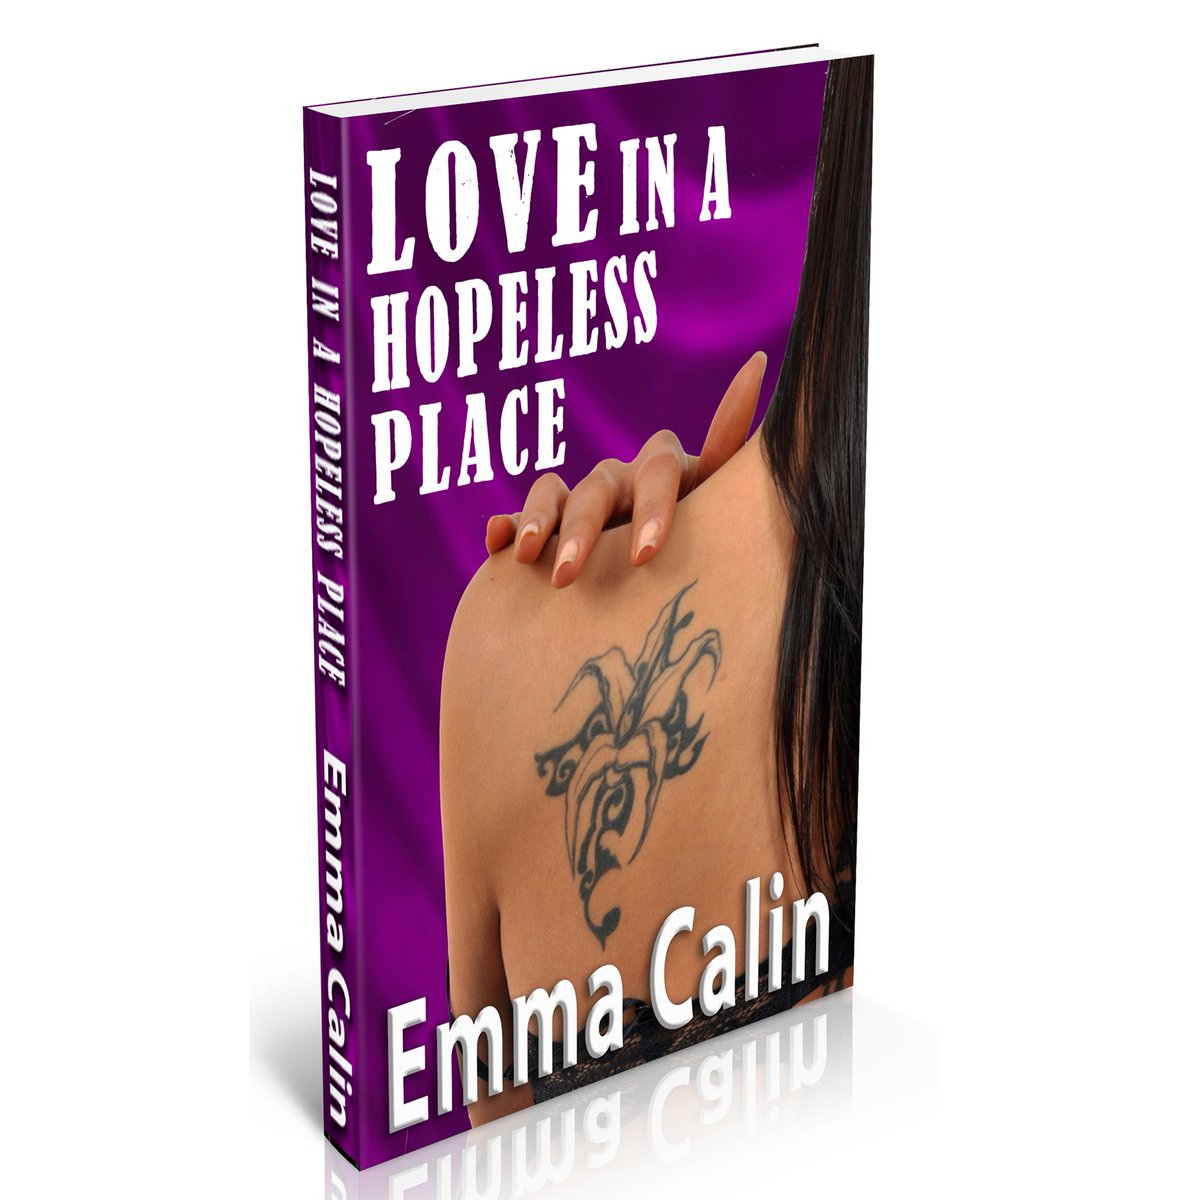 'Gritty, urban & with an inherent seediness' 5 star lesbian #romance #Free on #Kindle https://t.co/sqIAnC6DNf https://t.co/bHZBe3asjZ